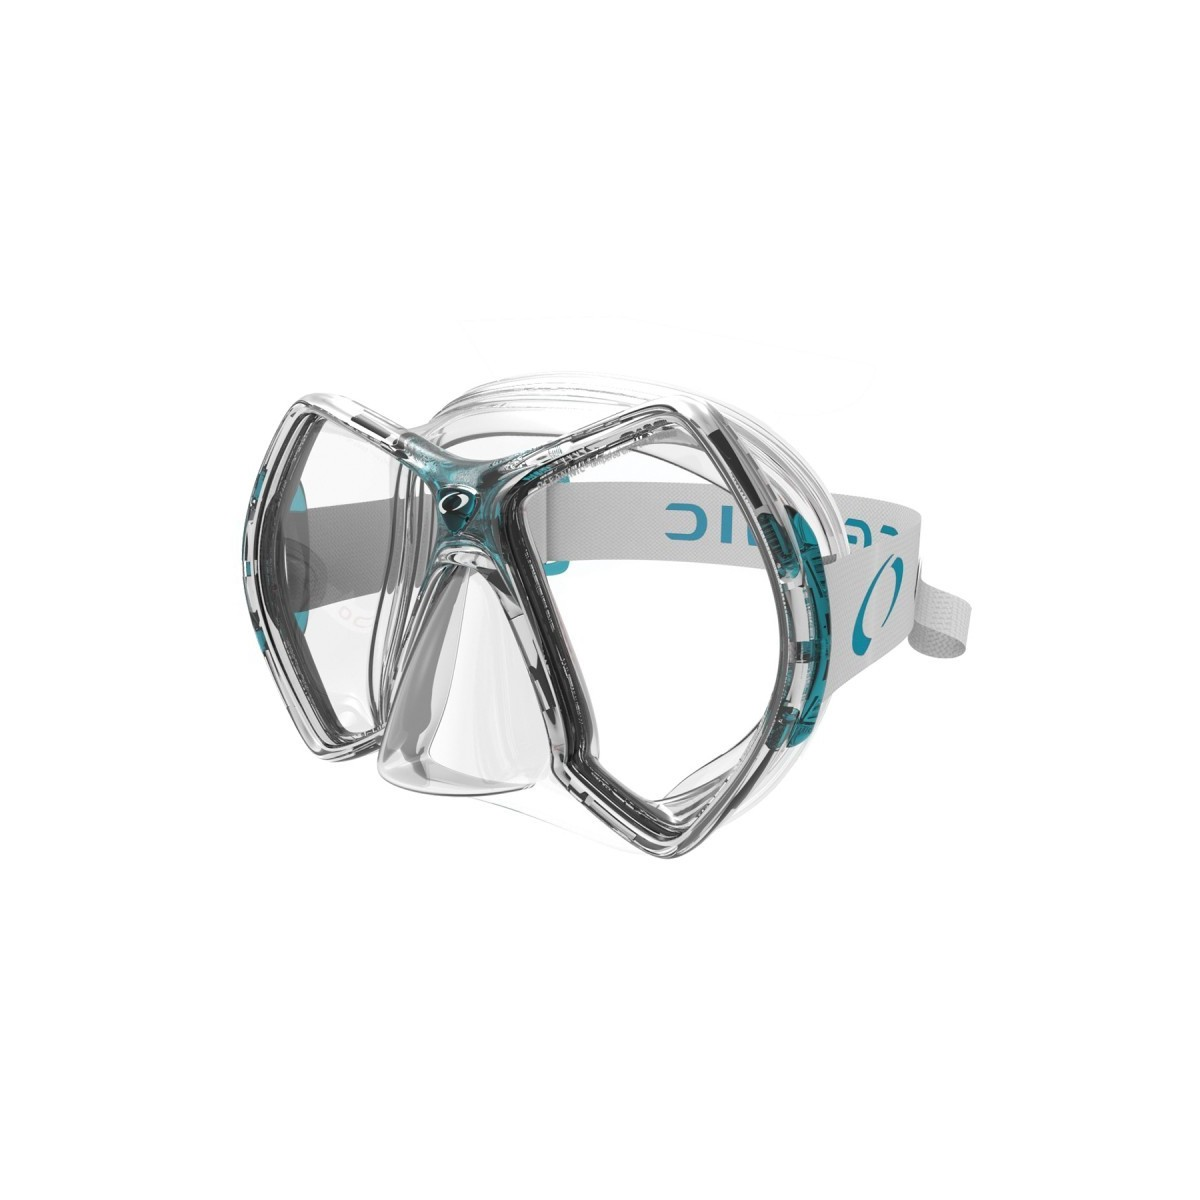 Oceanic Cyanea Double Lens Dive Mask